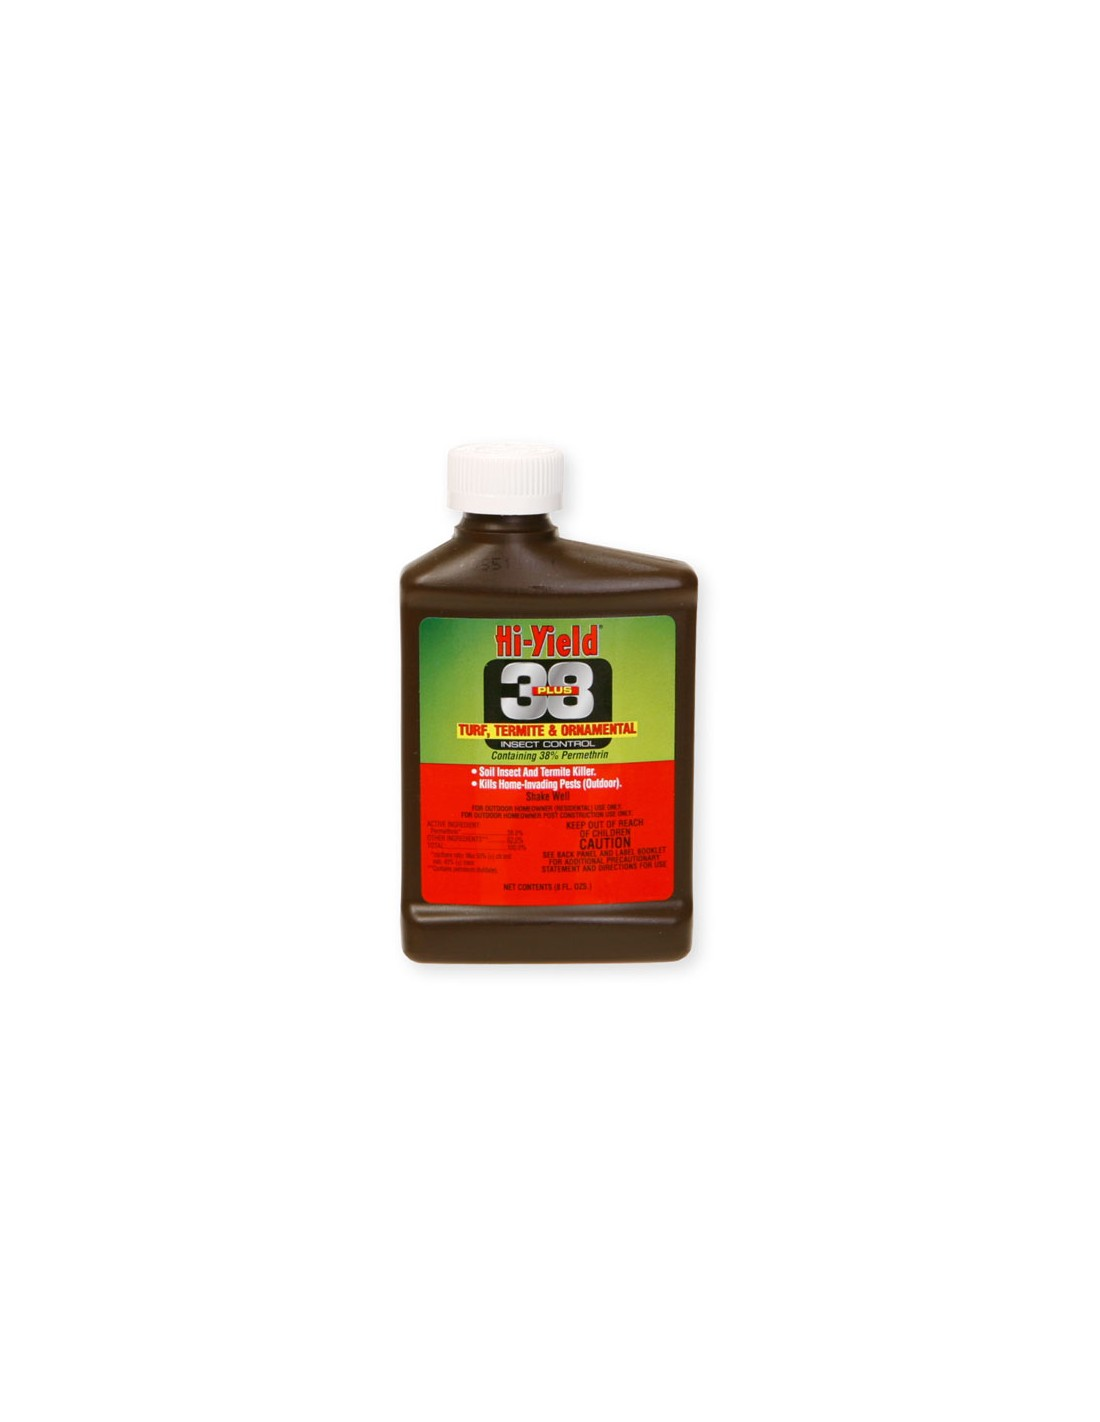 Is high yield plus 38 safe to use on vegetable plants